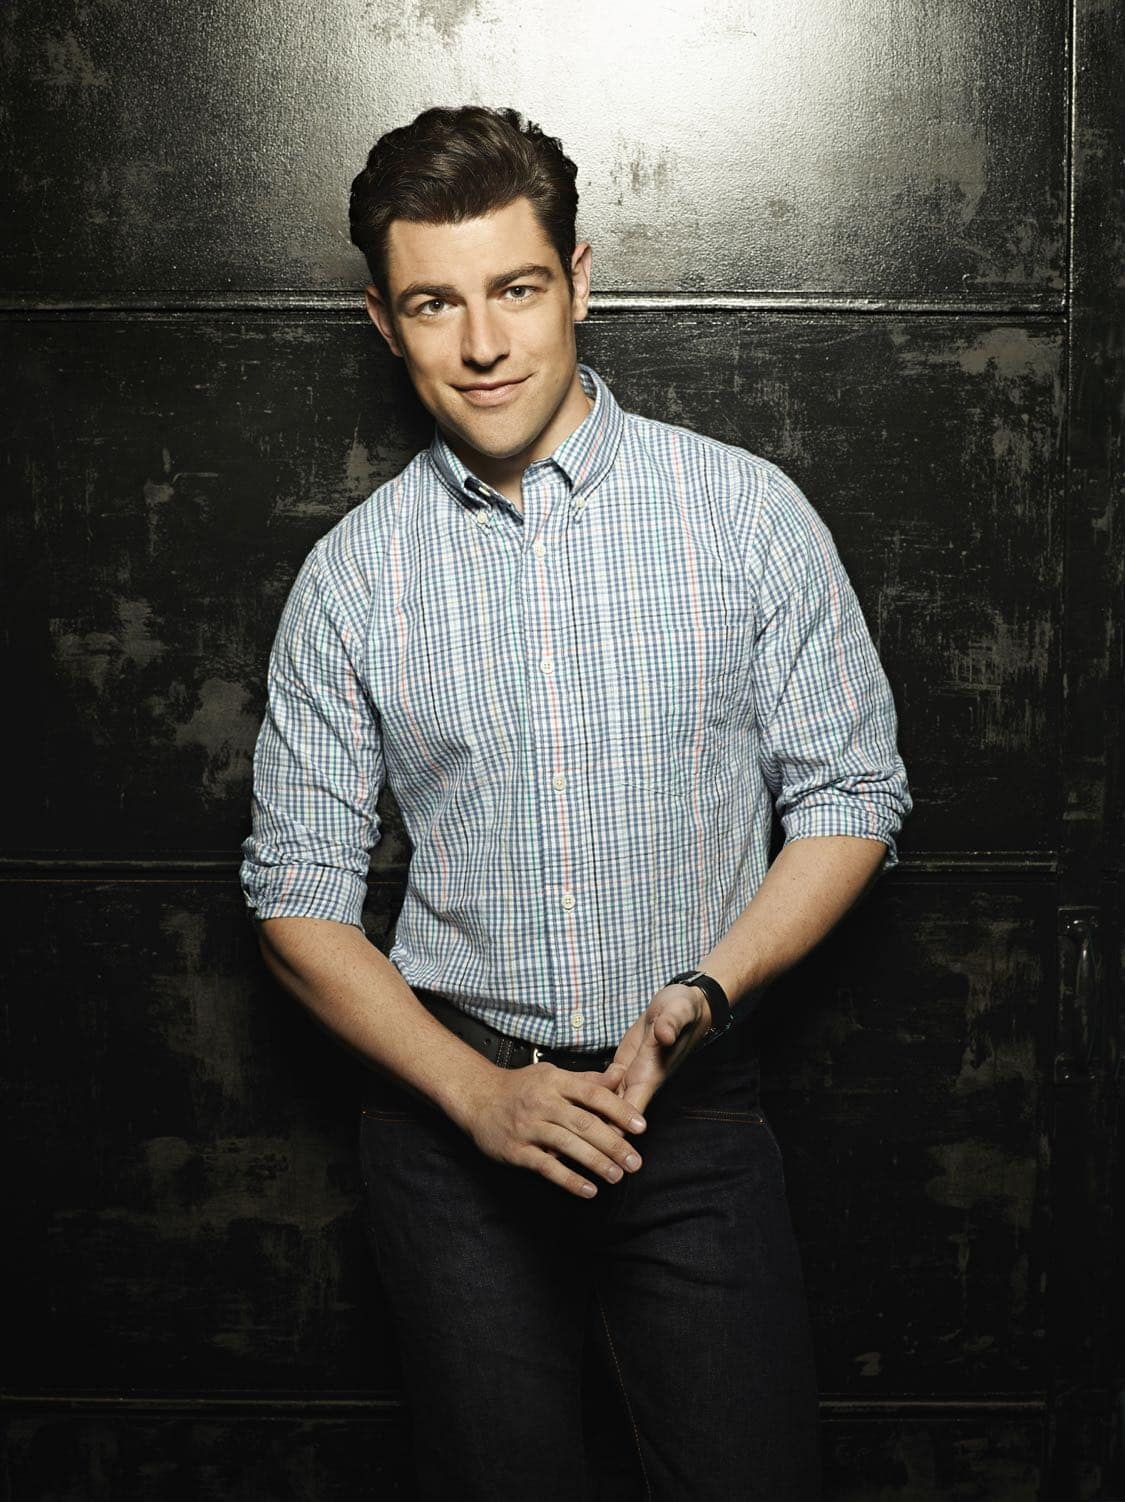 NEW GIRL: Max Greenfield returns as Schmidt. NEW GIRL premieres Tuesday, Sept. 20 (8:30-9:00 PM ET/PT) on FOX.